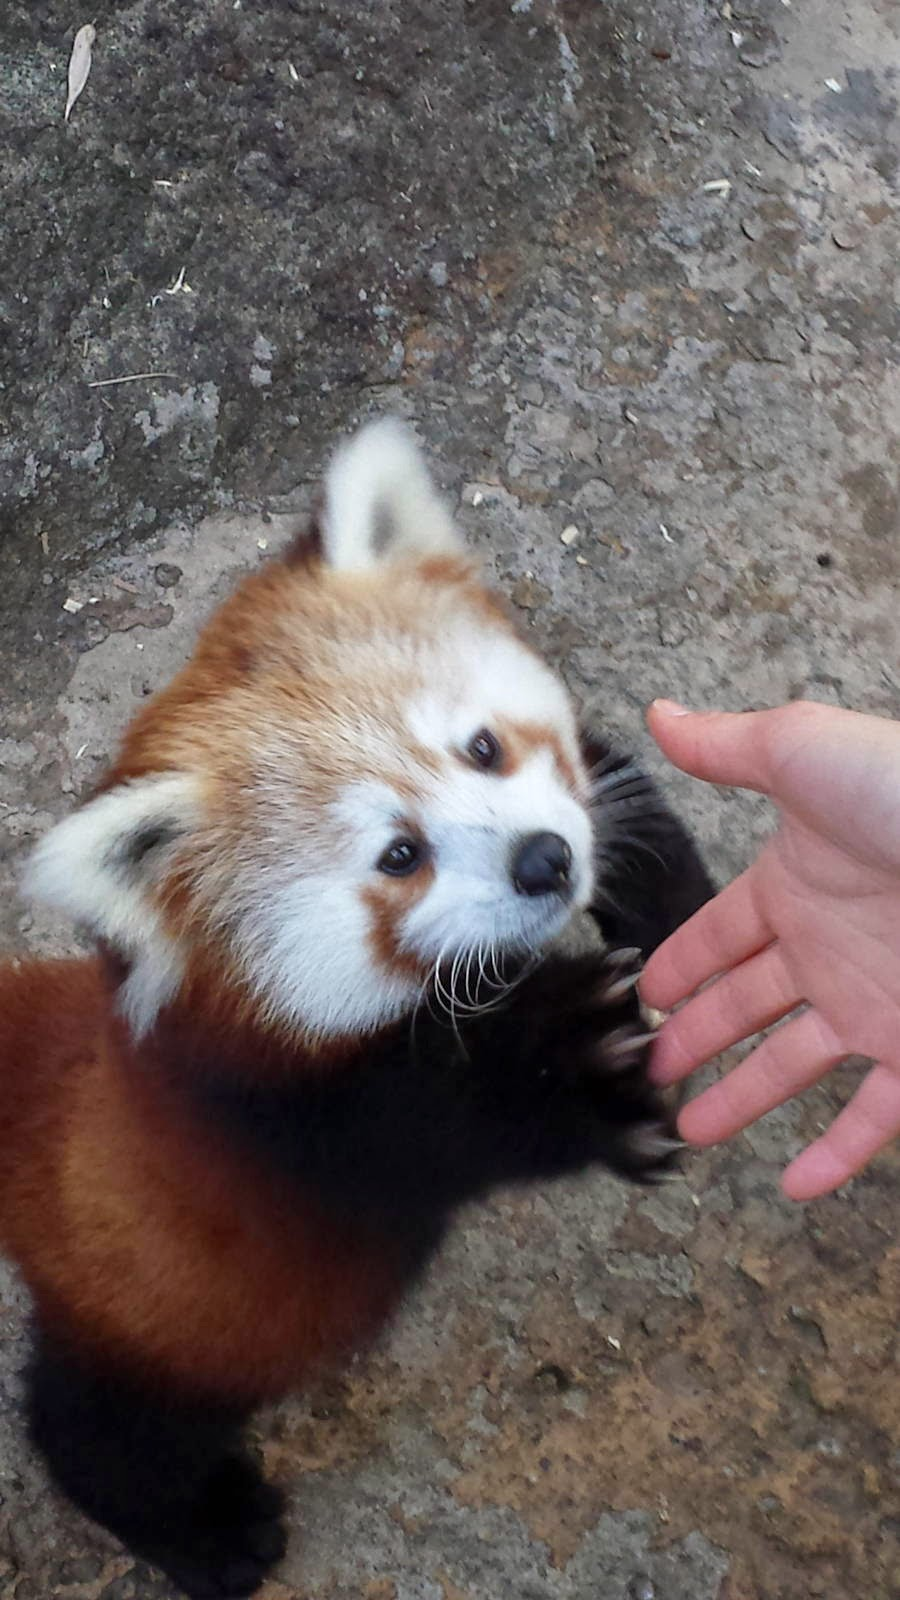 40 Adorable red panda pictures (40 pics), red panda shakes hand a human